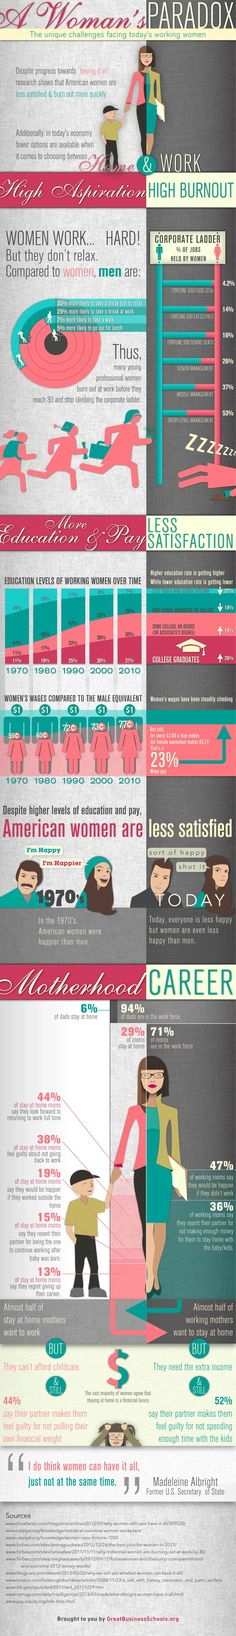 #INFOgraphic > Working Women in America: American women are working hard and are feeling quite saddled in their effort to effectively respond to both motherhood and career duties, with most of them having limited options to choose a single role. But what mostly pains is the fact that contrary to their feministic feats, modern women are... > http://infographicsmania.com/working-women-in-america/